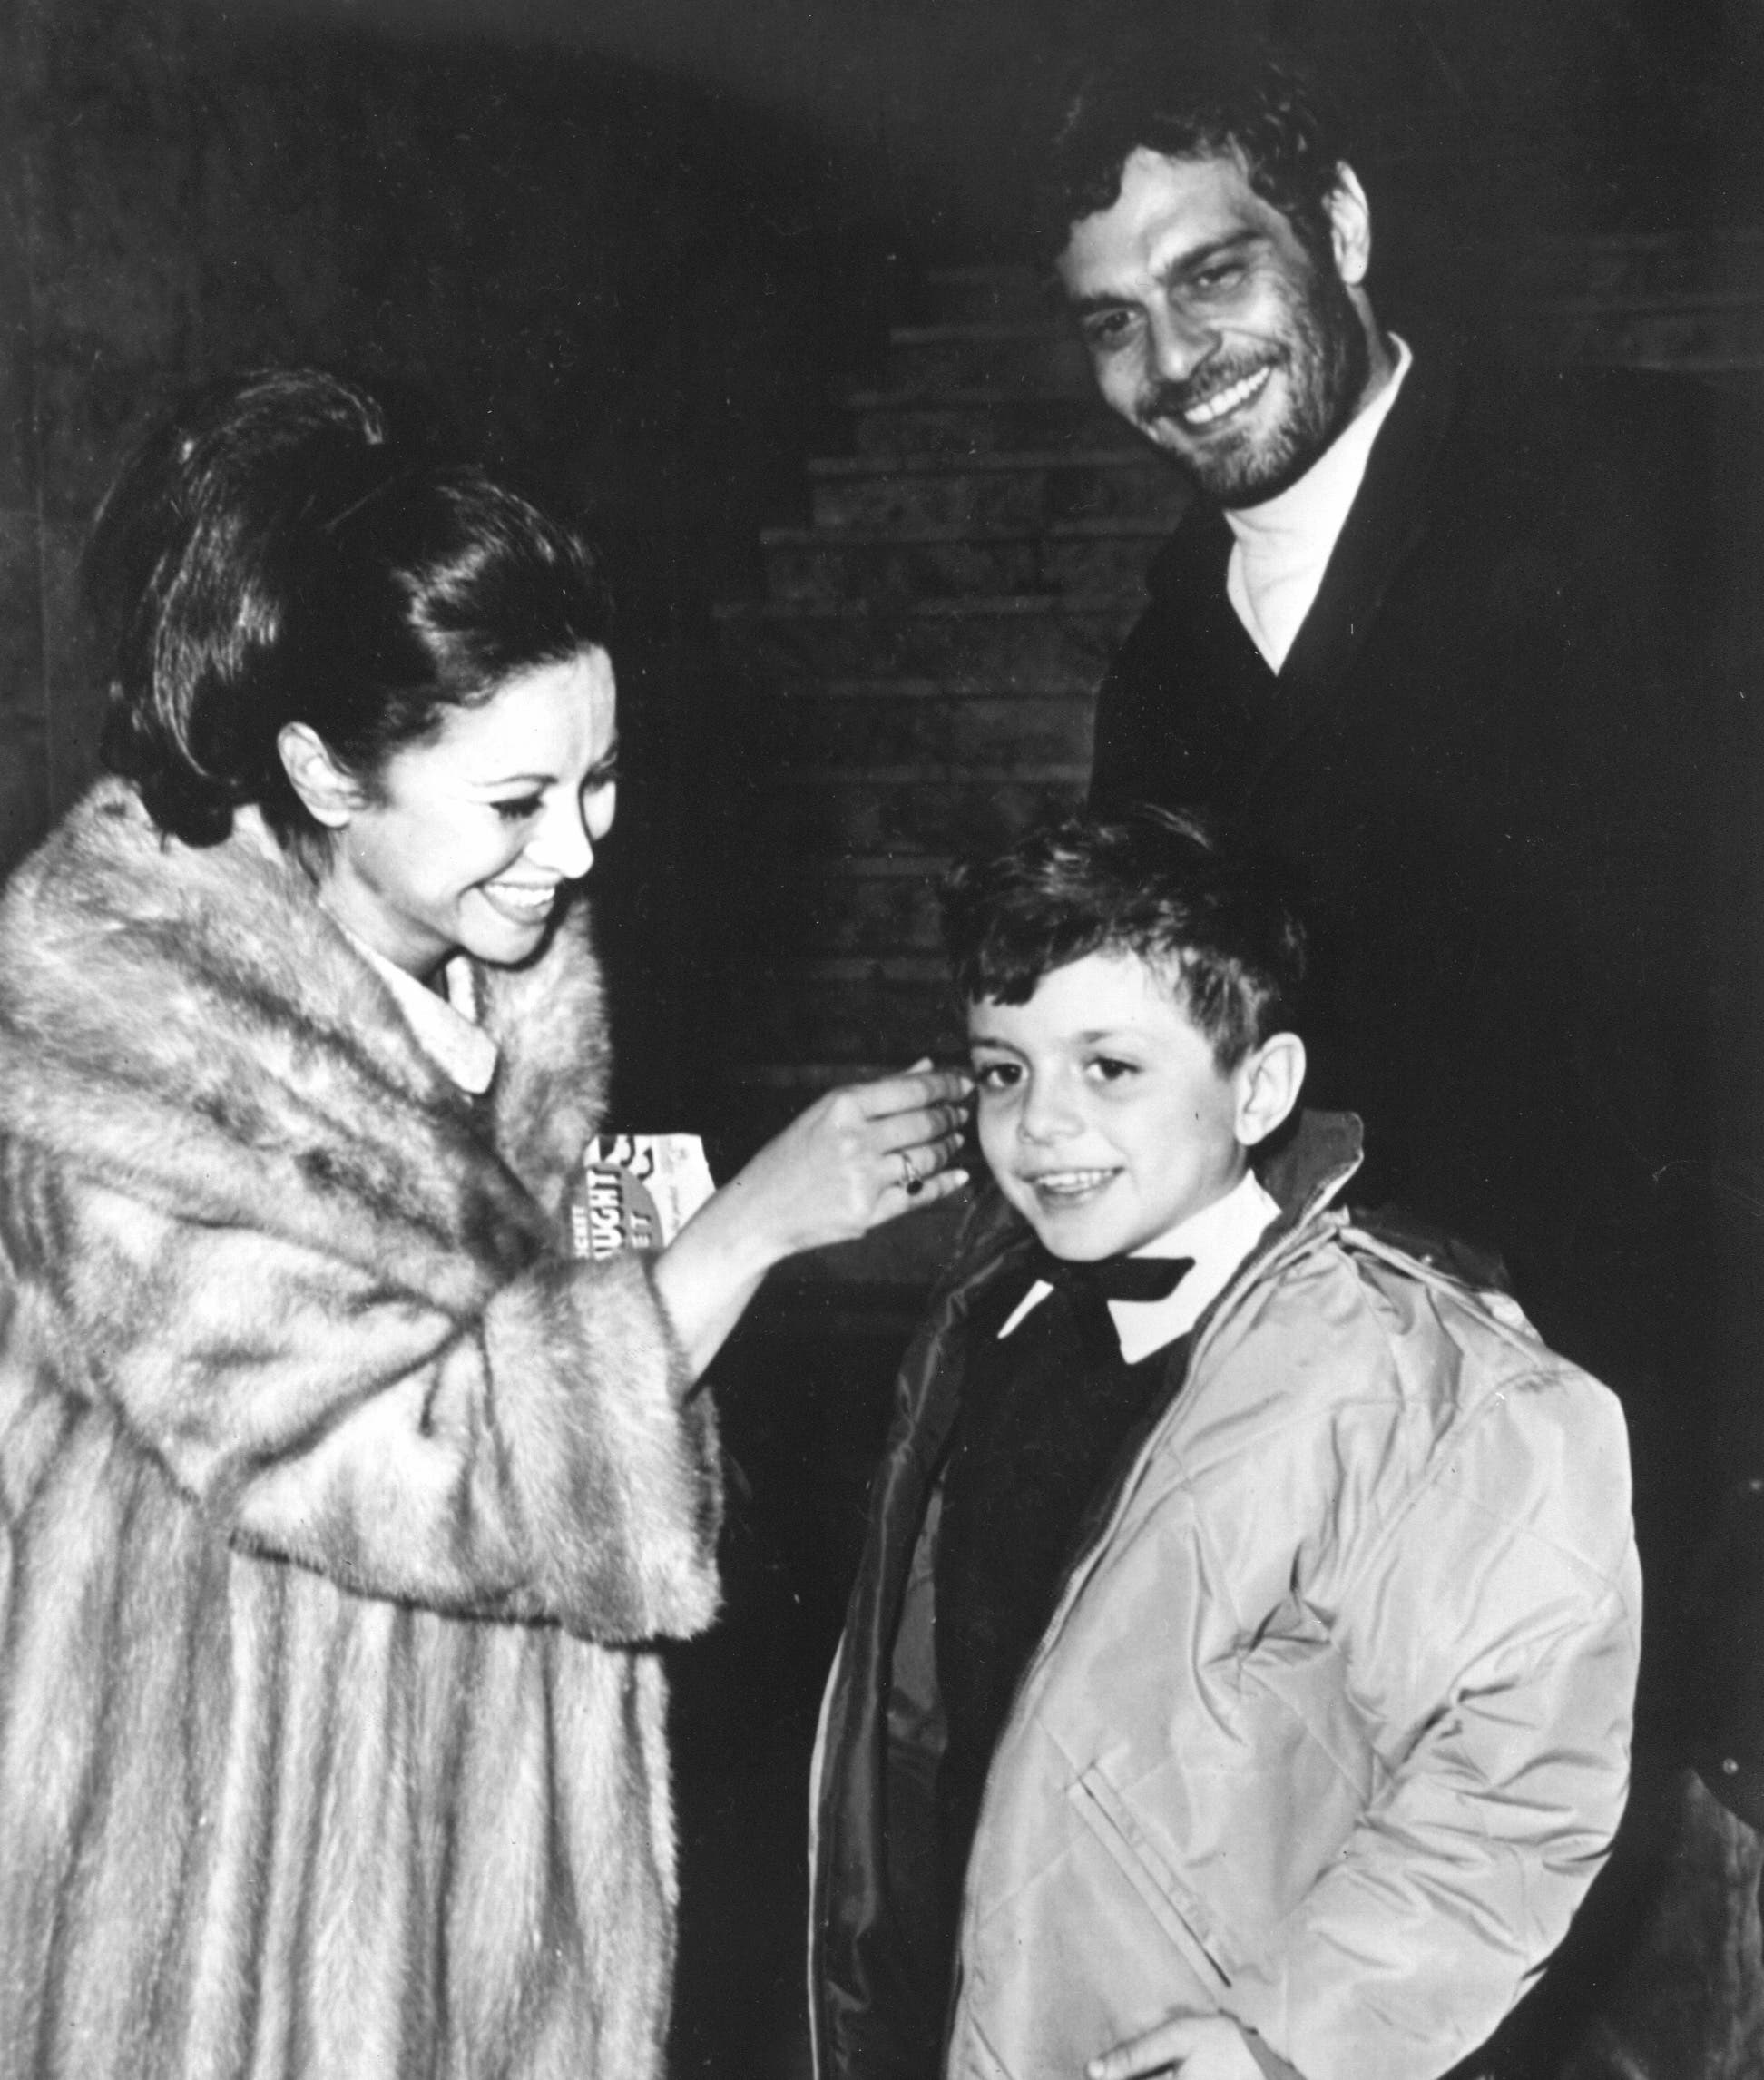 Egyptian actor Omar Sharif is seen with his wife, actress Faten Hamama, and their eight-year-old son, Tarek, as they get together for New Year's Eve celebration in Madrid, Spain, on Dec. 31, 1965. (File: AP)